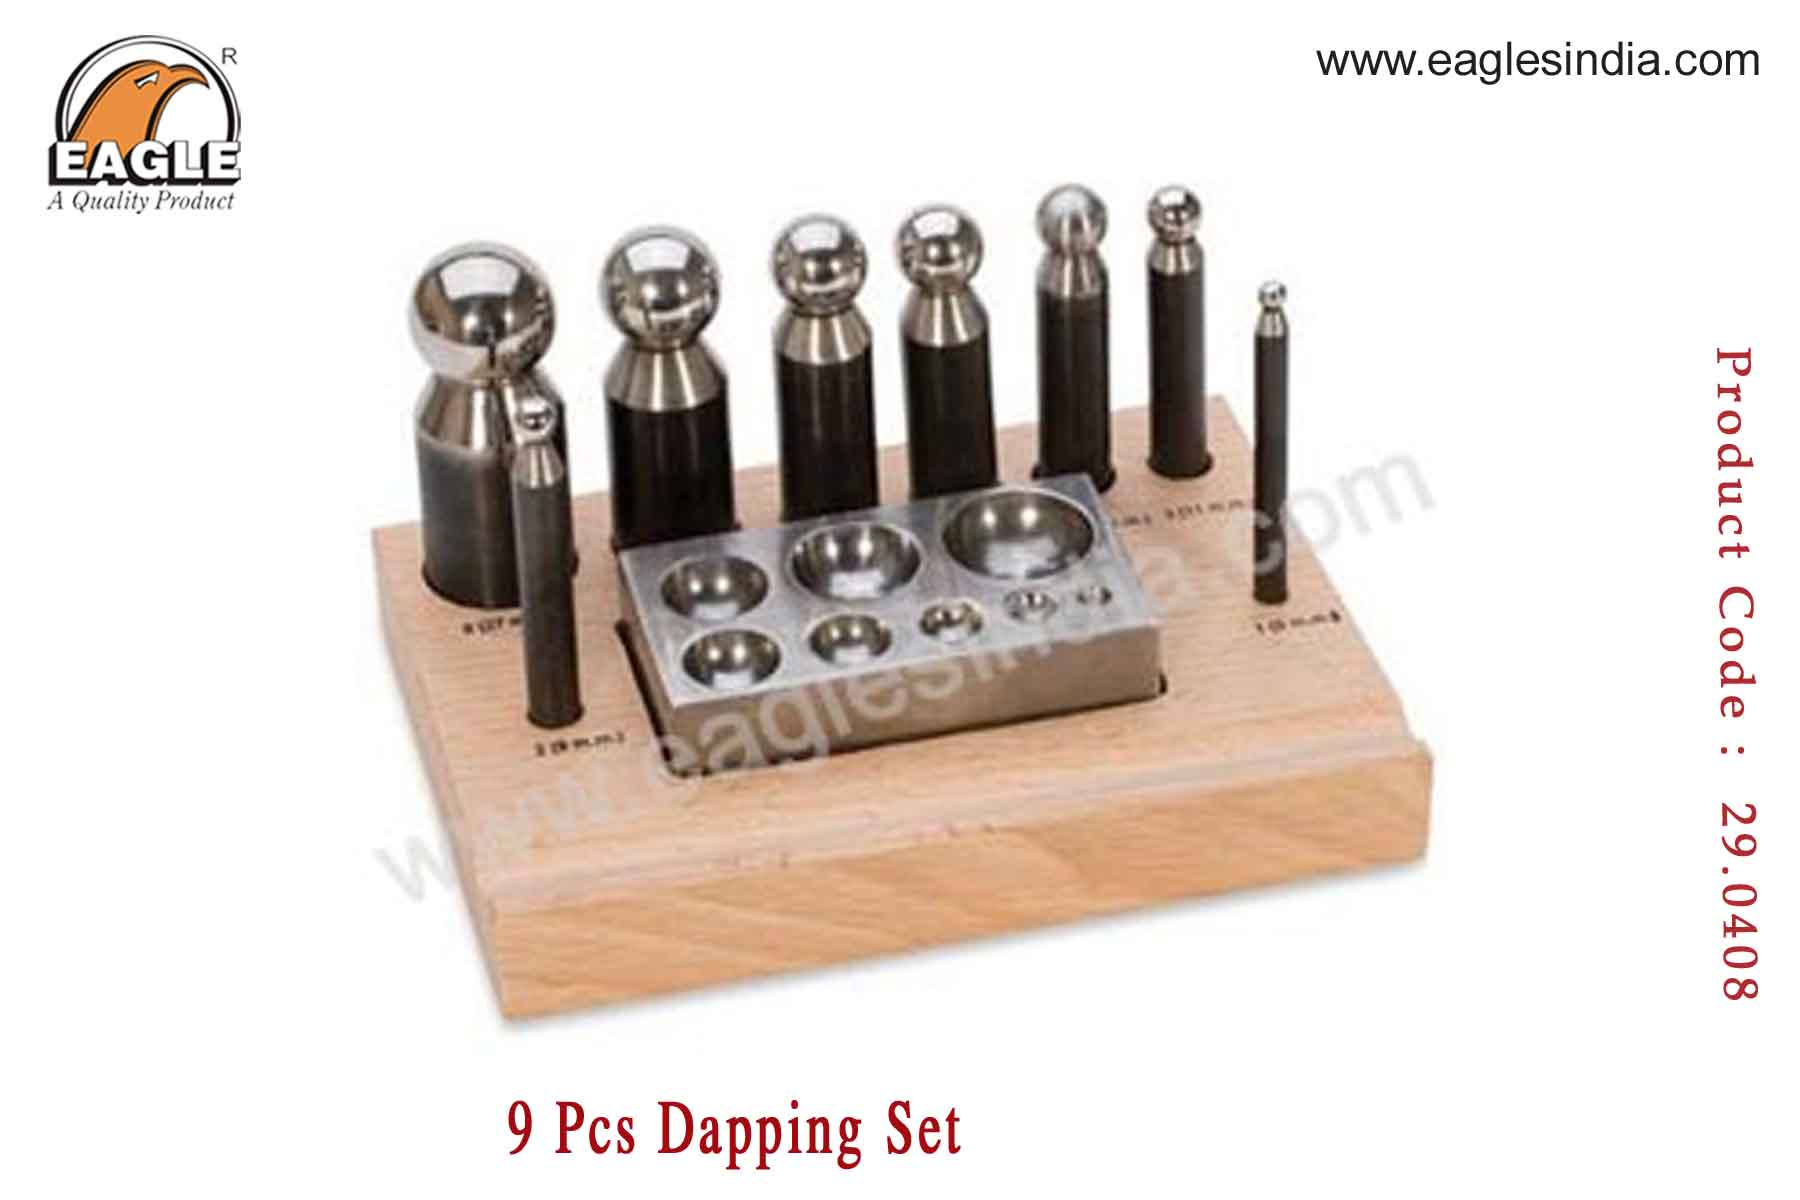 Dapping set 9pcs